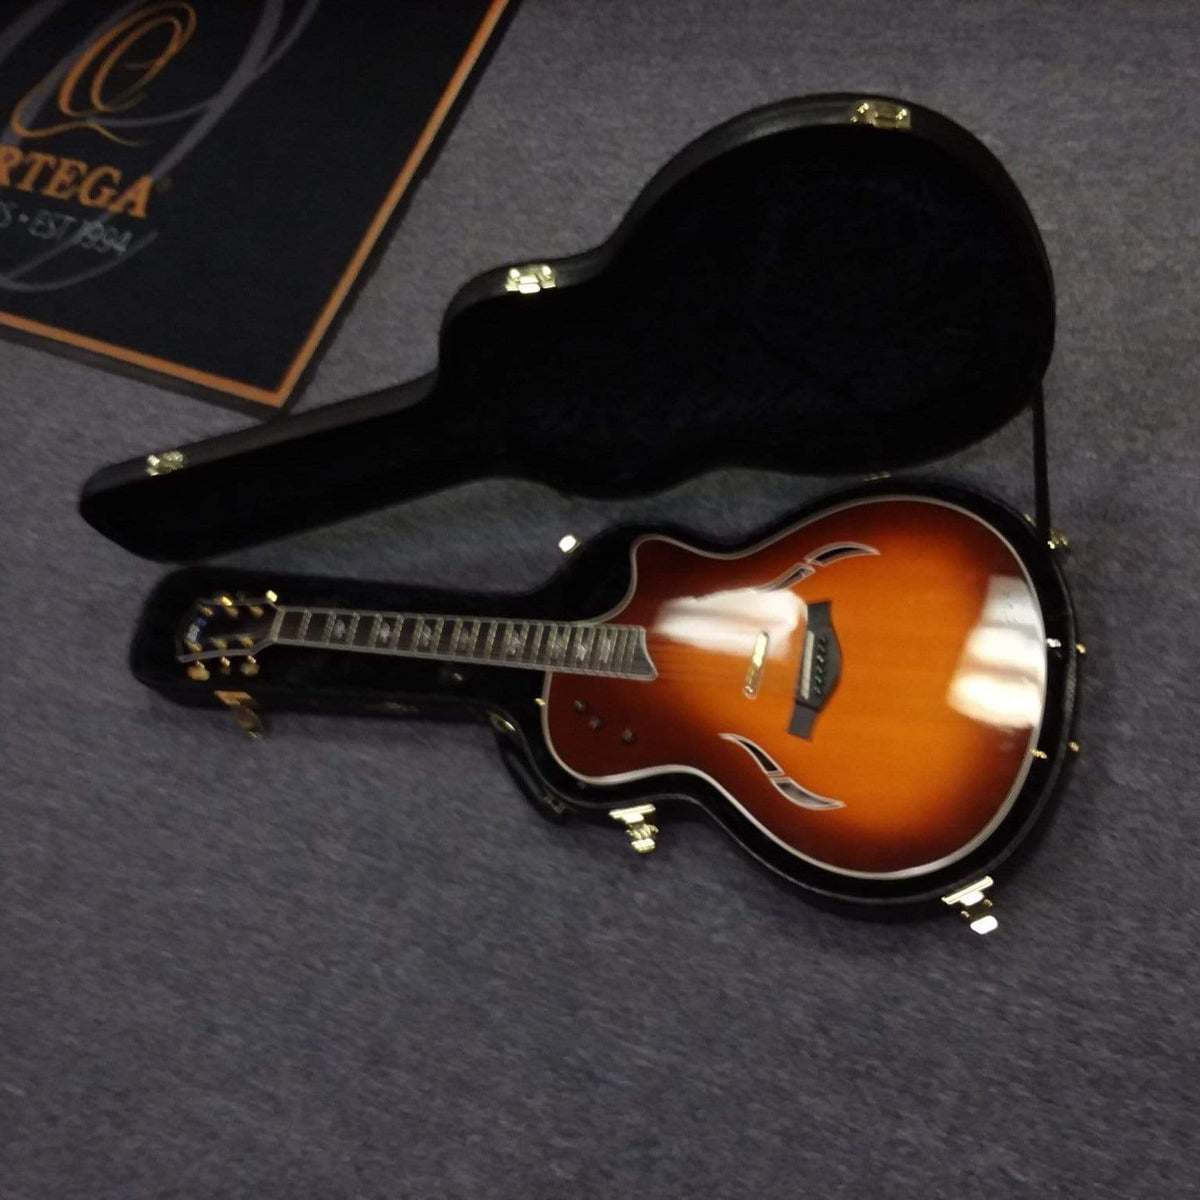 Taylor Unclassified Taylor T5 - C 2006 Customized w/ Piezo